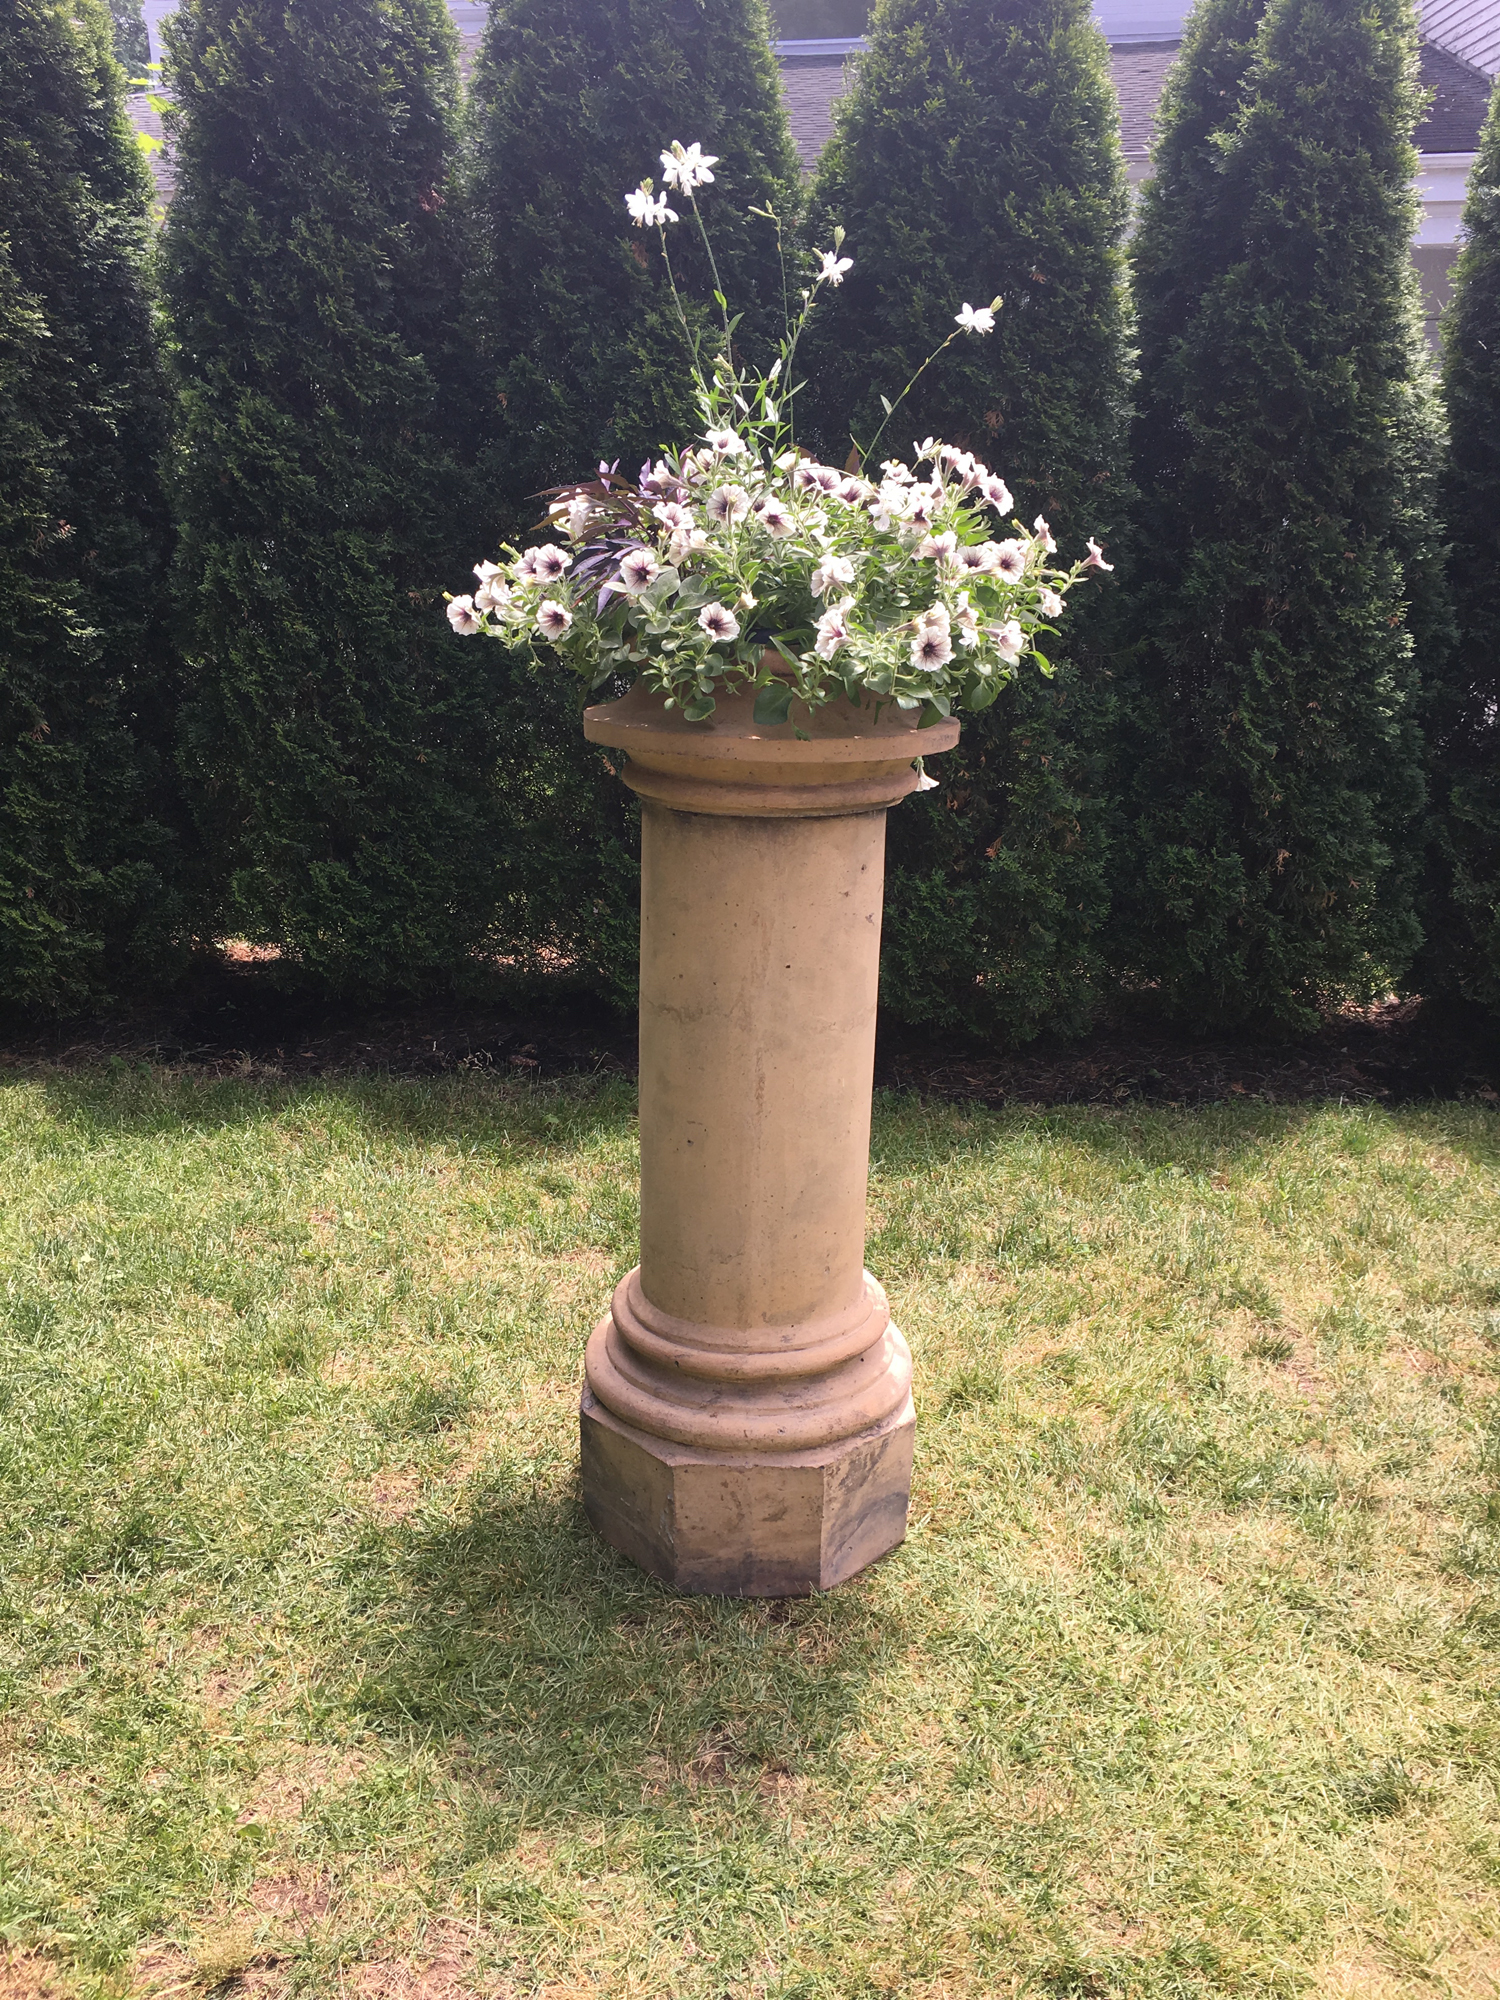 pedestal shepton classic has view a stone website the ornaments since sheptonclassicstone for uk up set large producing with to blight when garden morgan stoneware uns it by been was